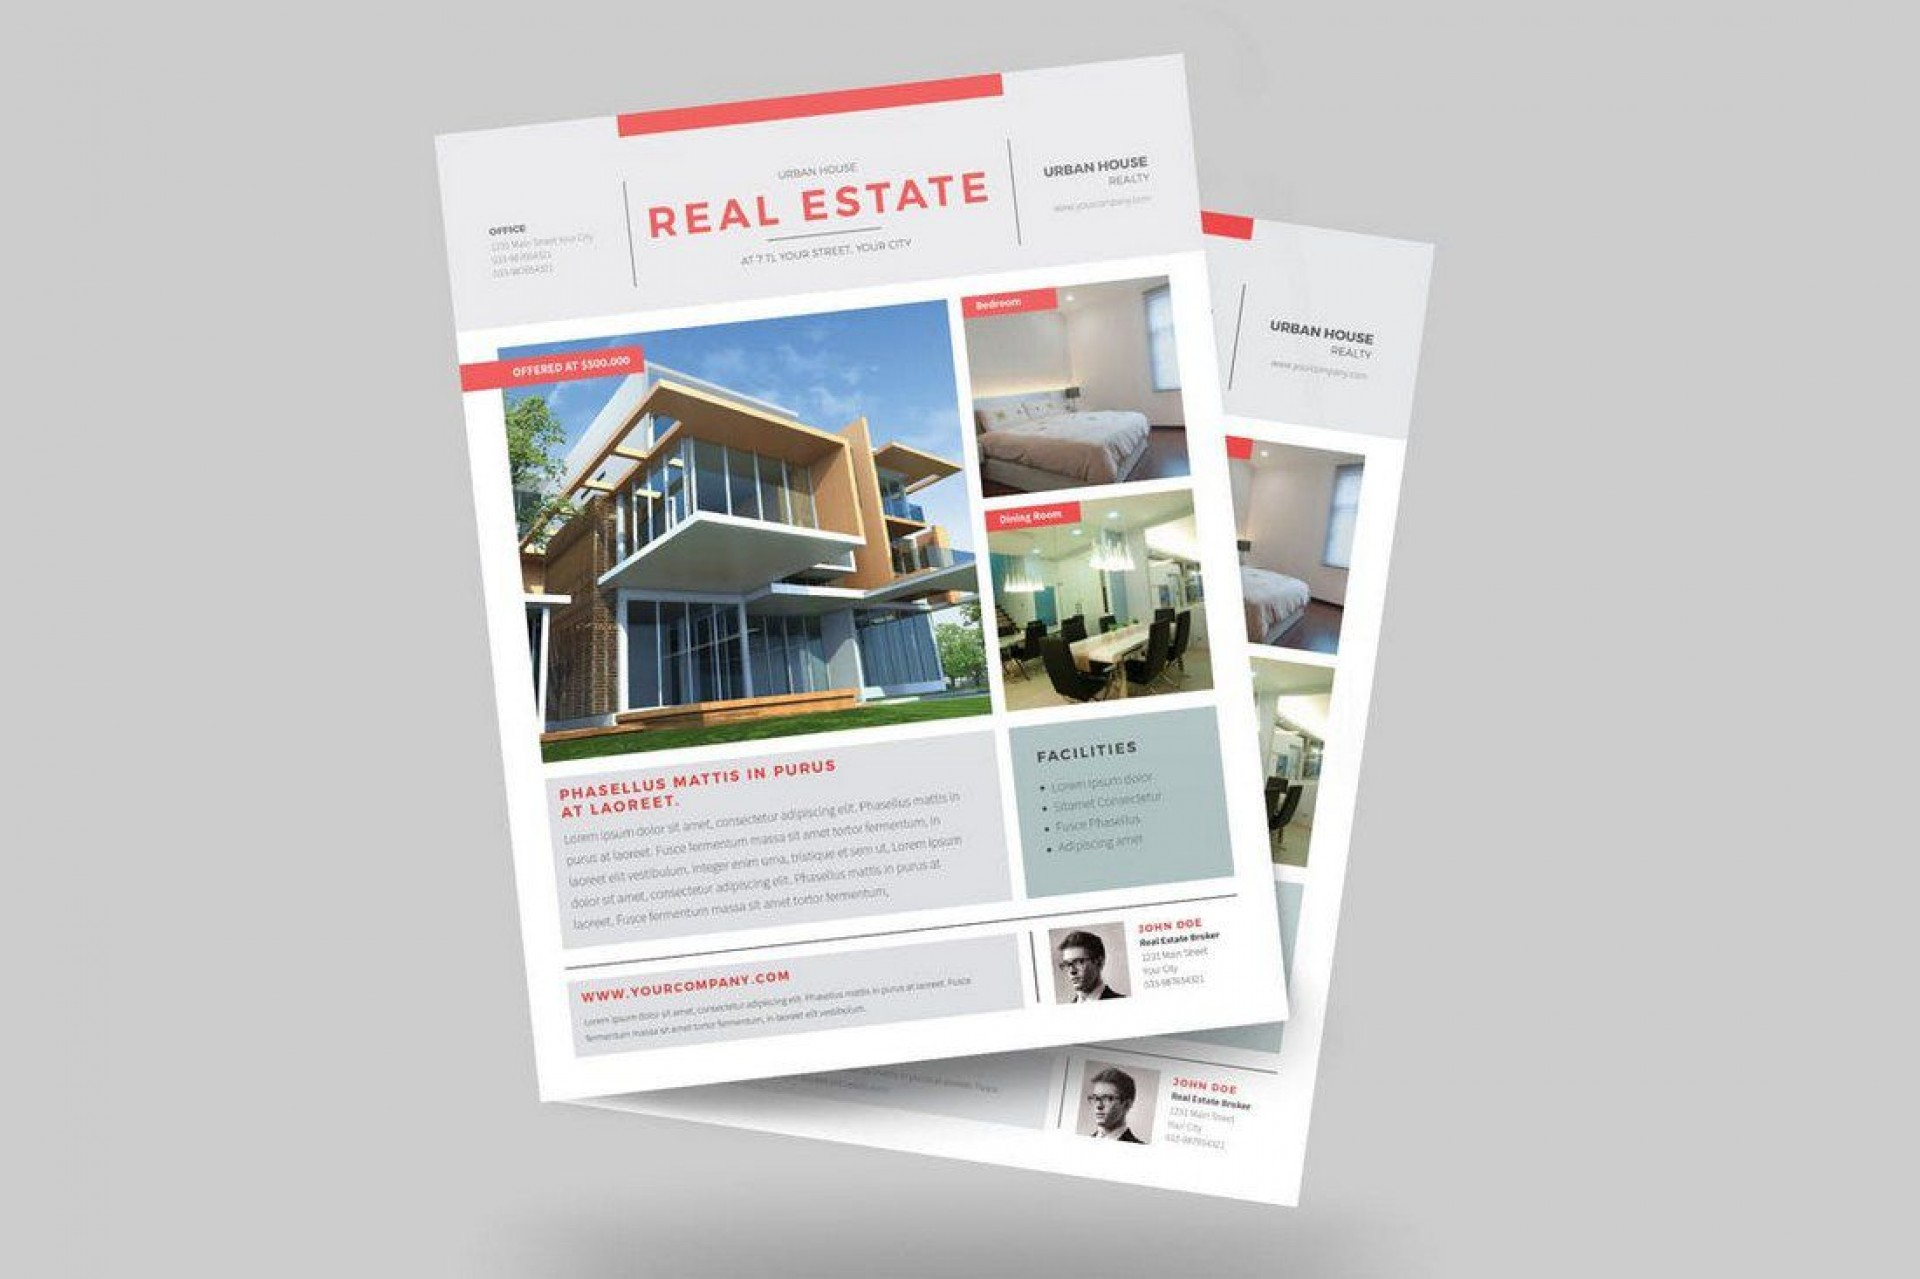 007 Formidable Real Estate Flyer Template Idea  Publisher Word Free1920